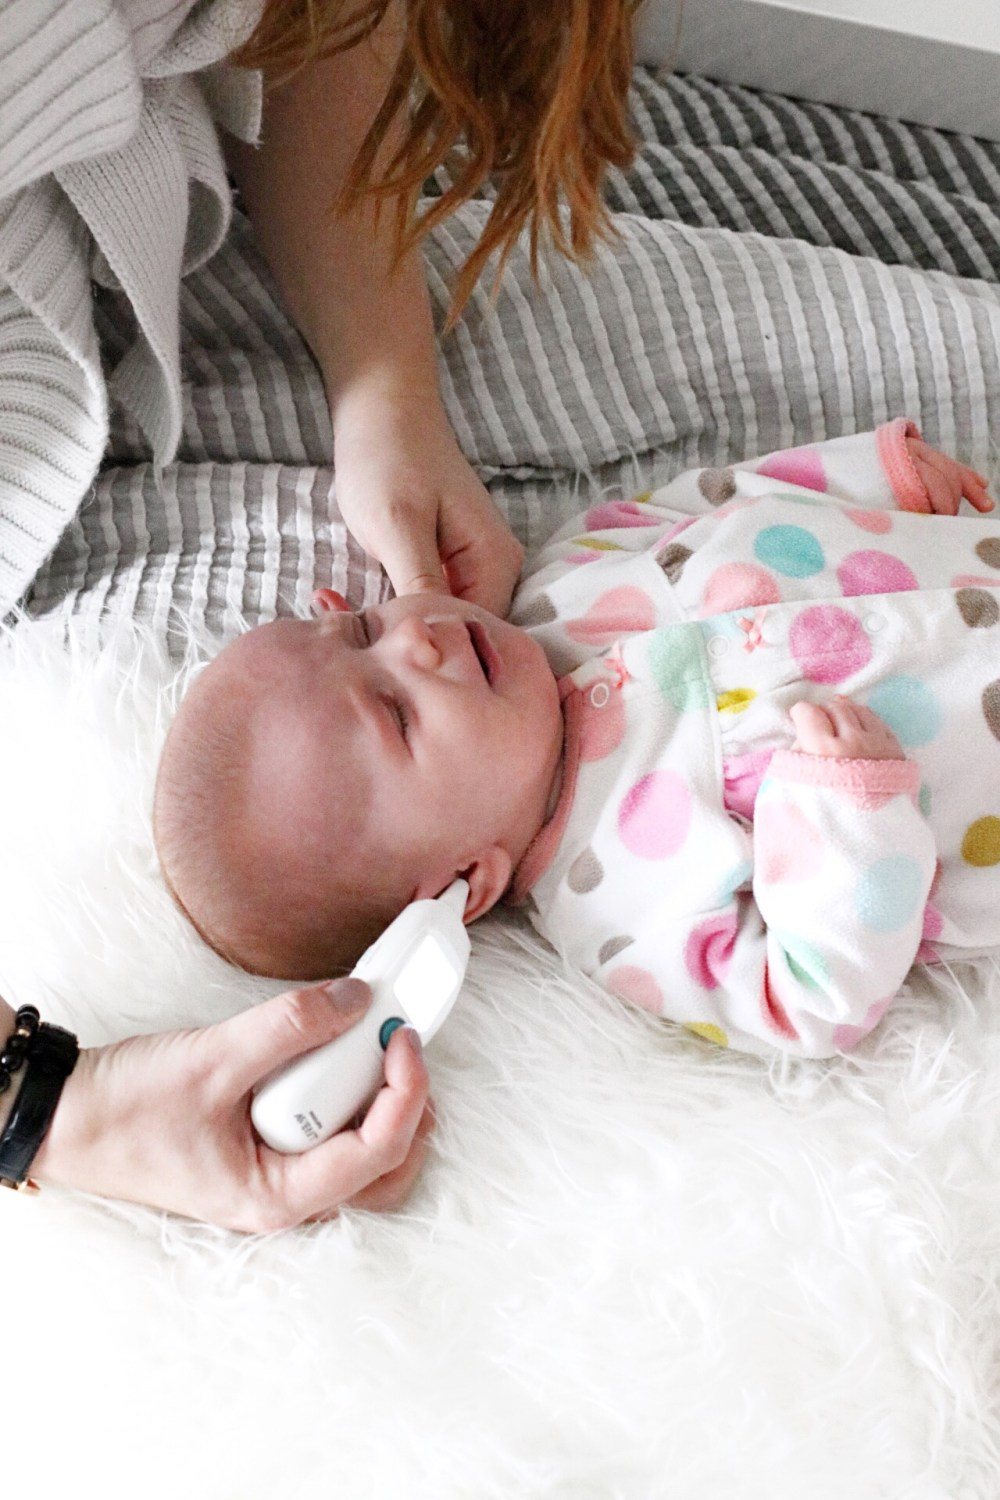 How To Take A Baby's Temperature Philips Avent Smart Ear Thermometer Review